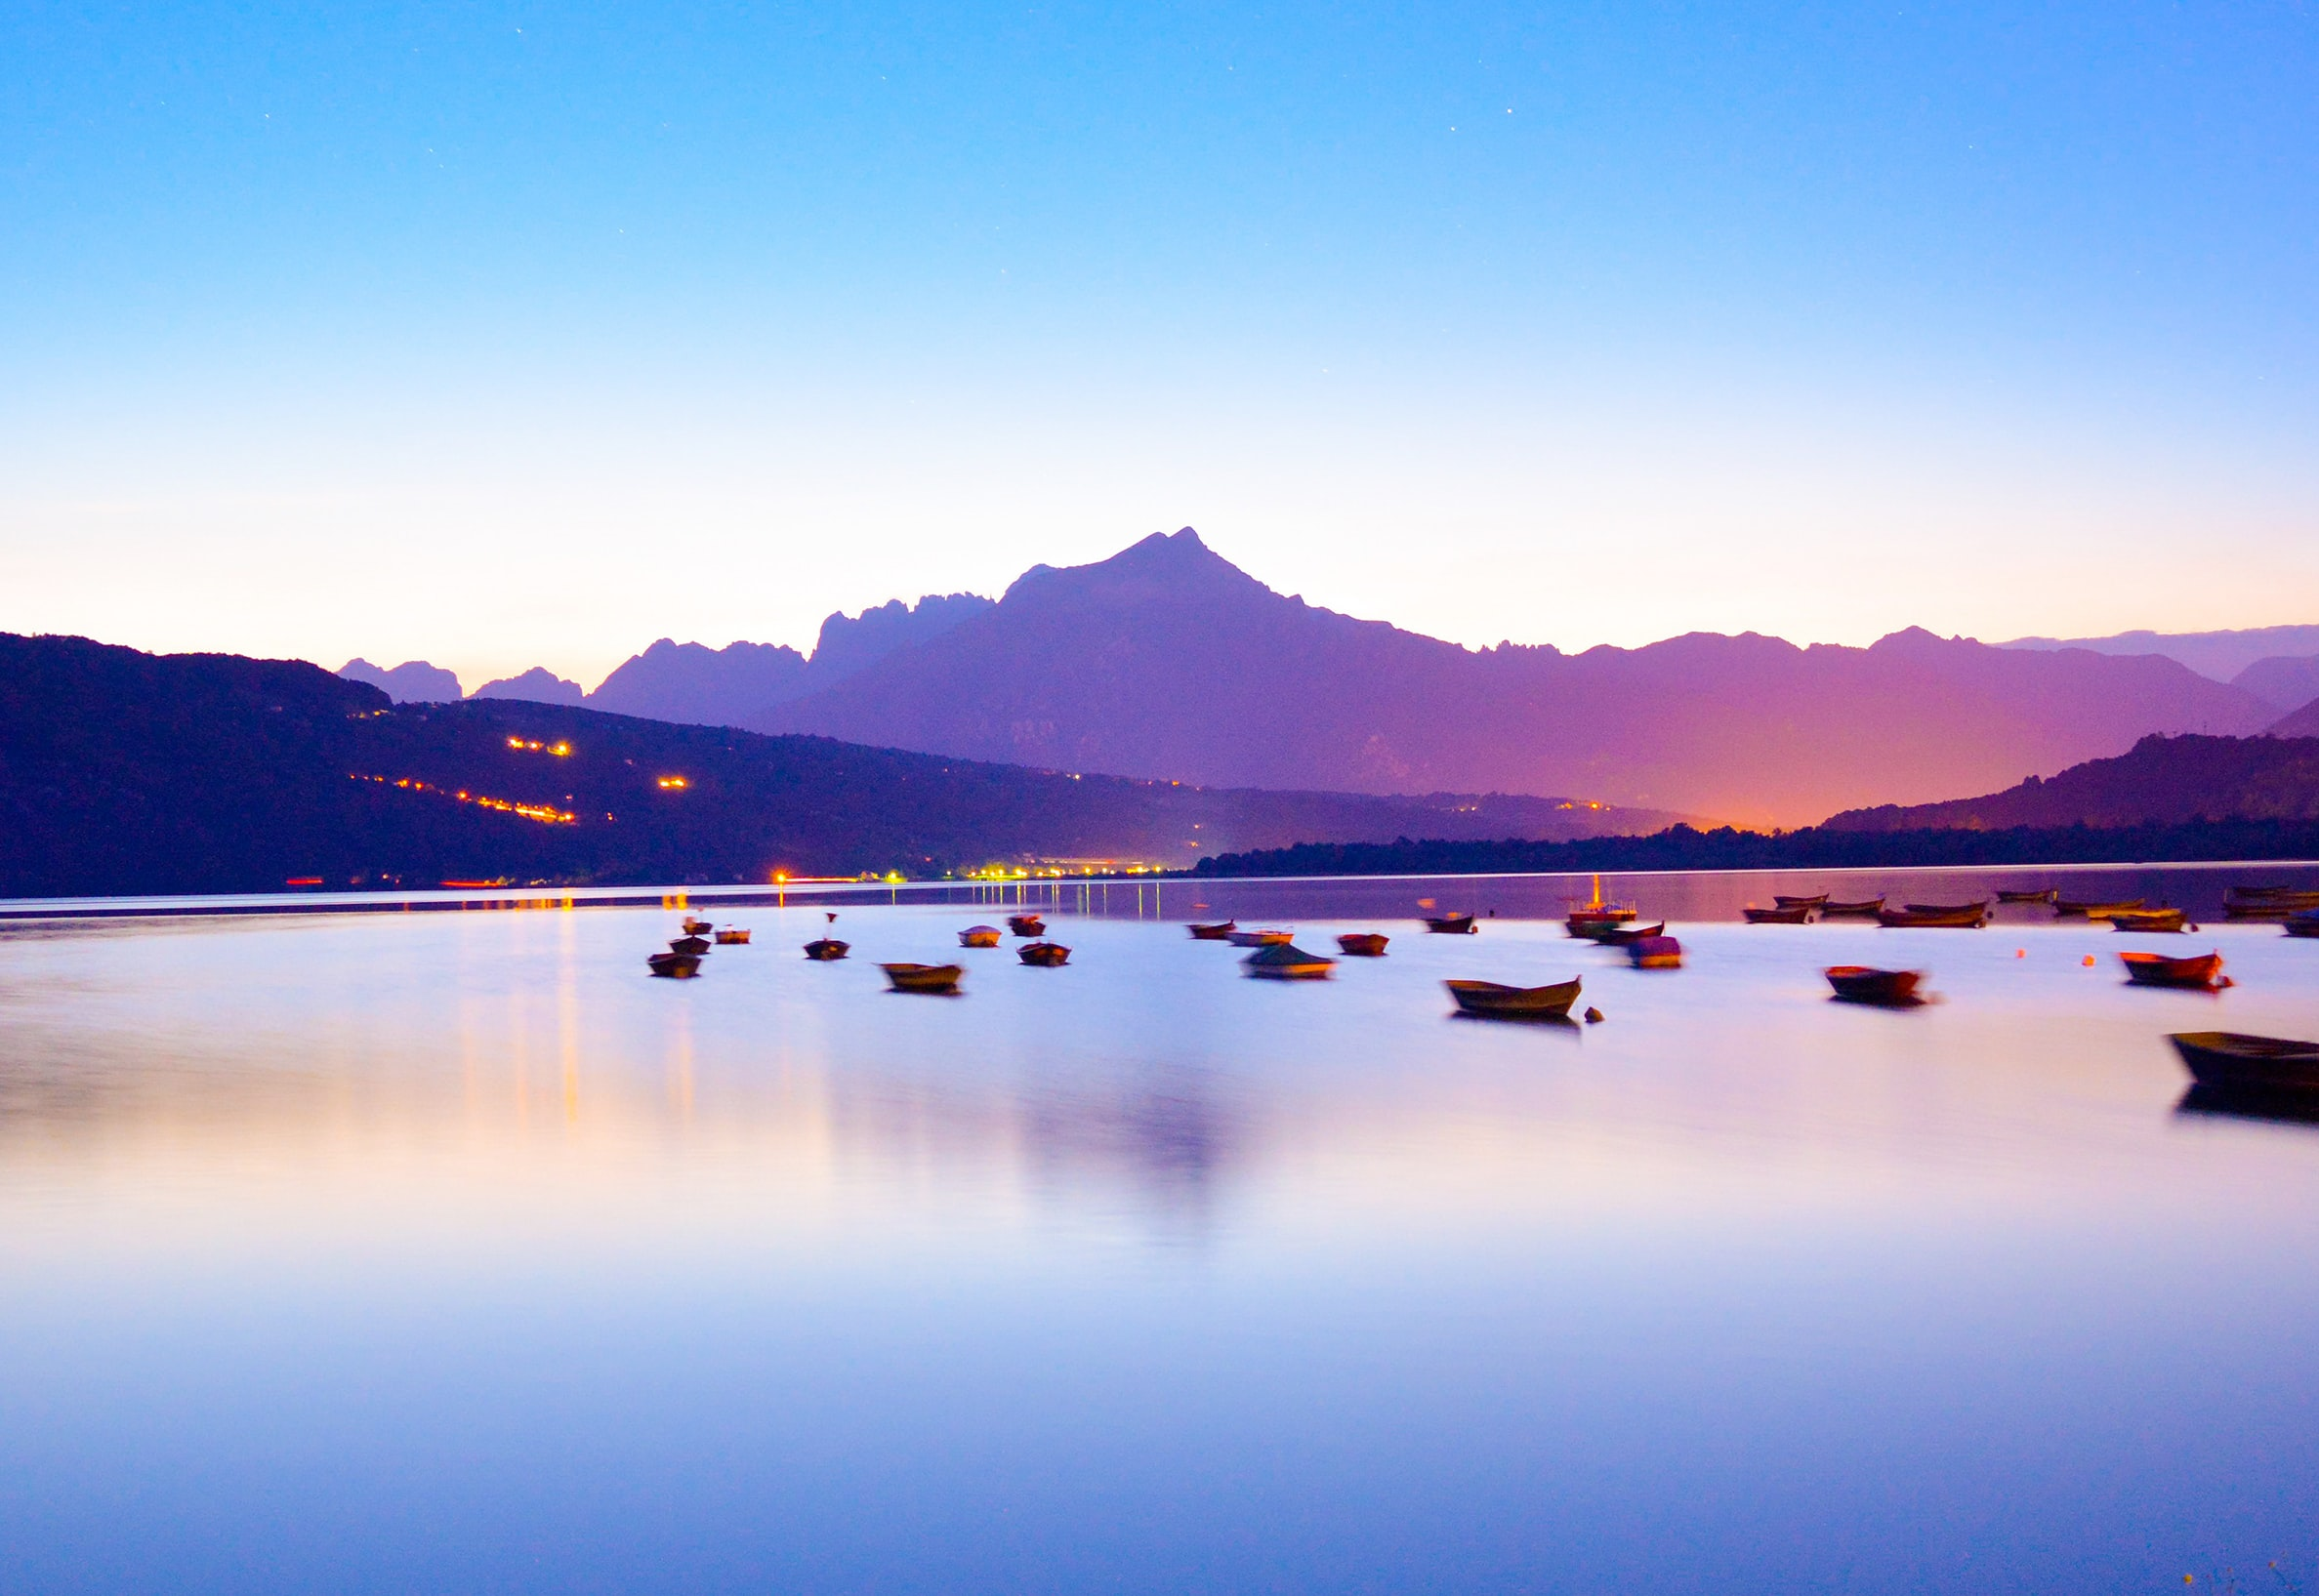 boats in body of water overlooking mountain